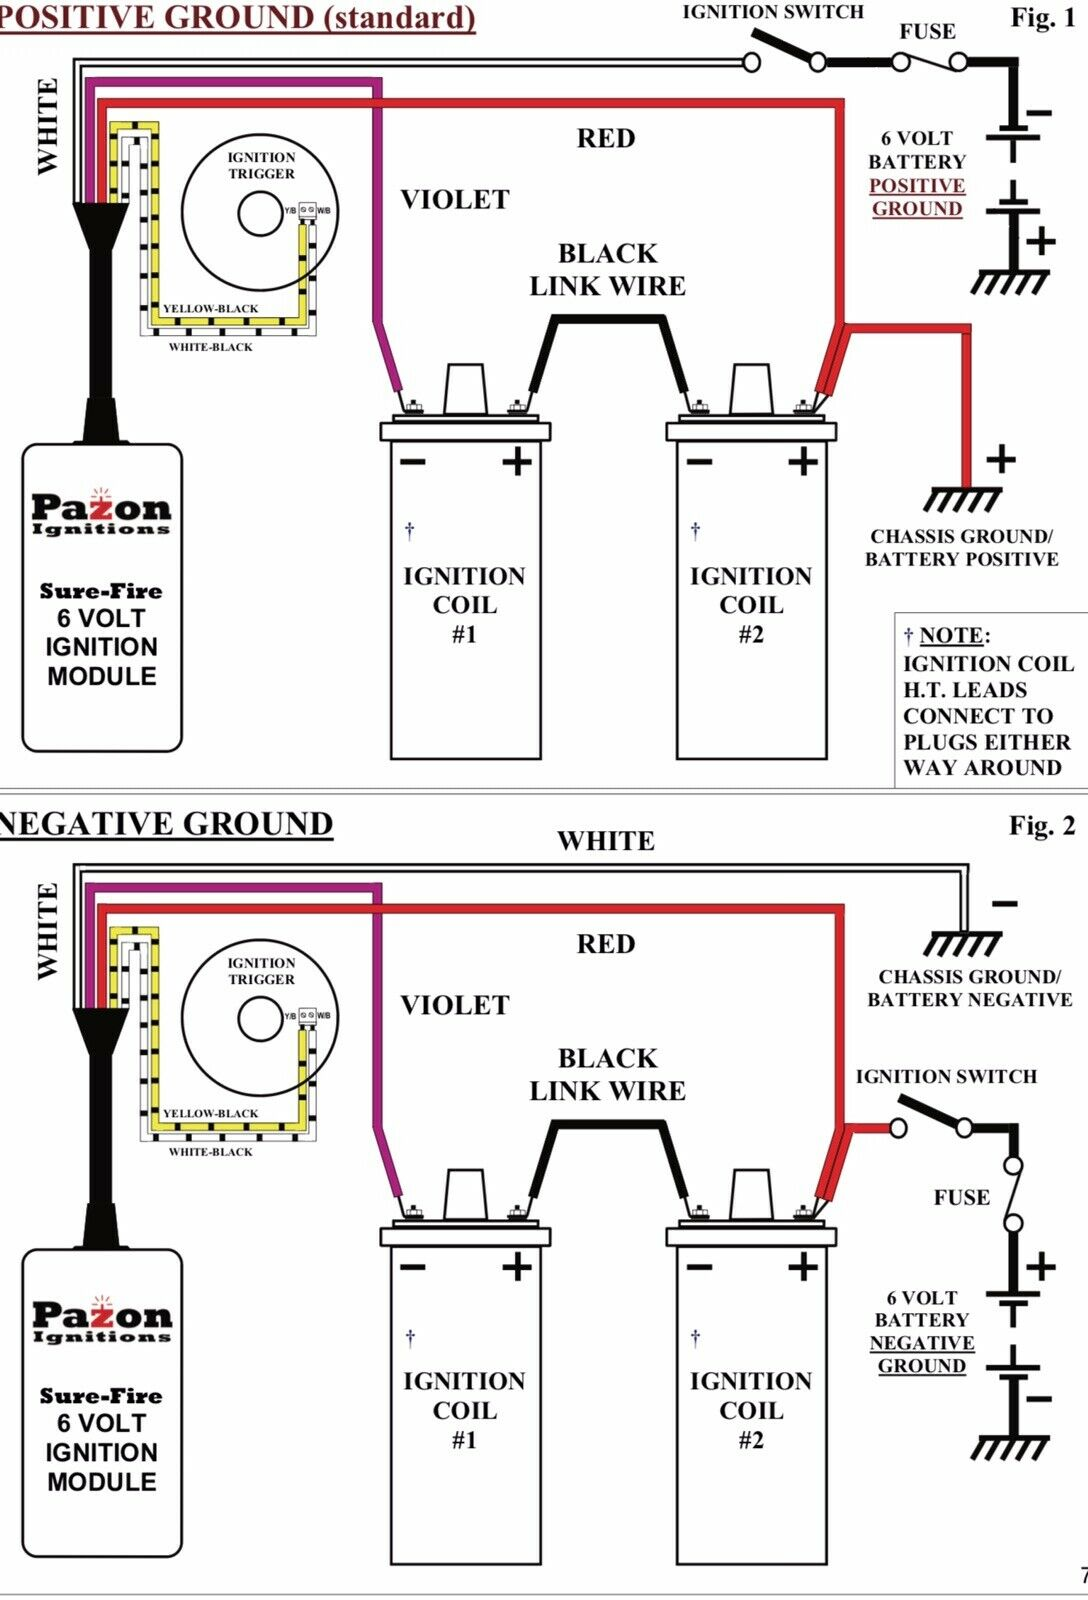 hight resolution of pazon wiring diagram wiring diagrams wnipazon wiring diagram 2